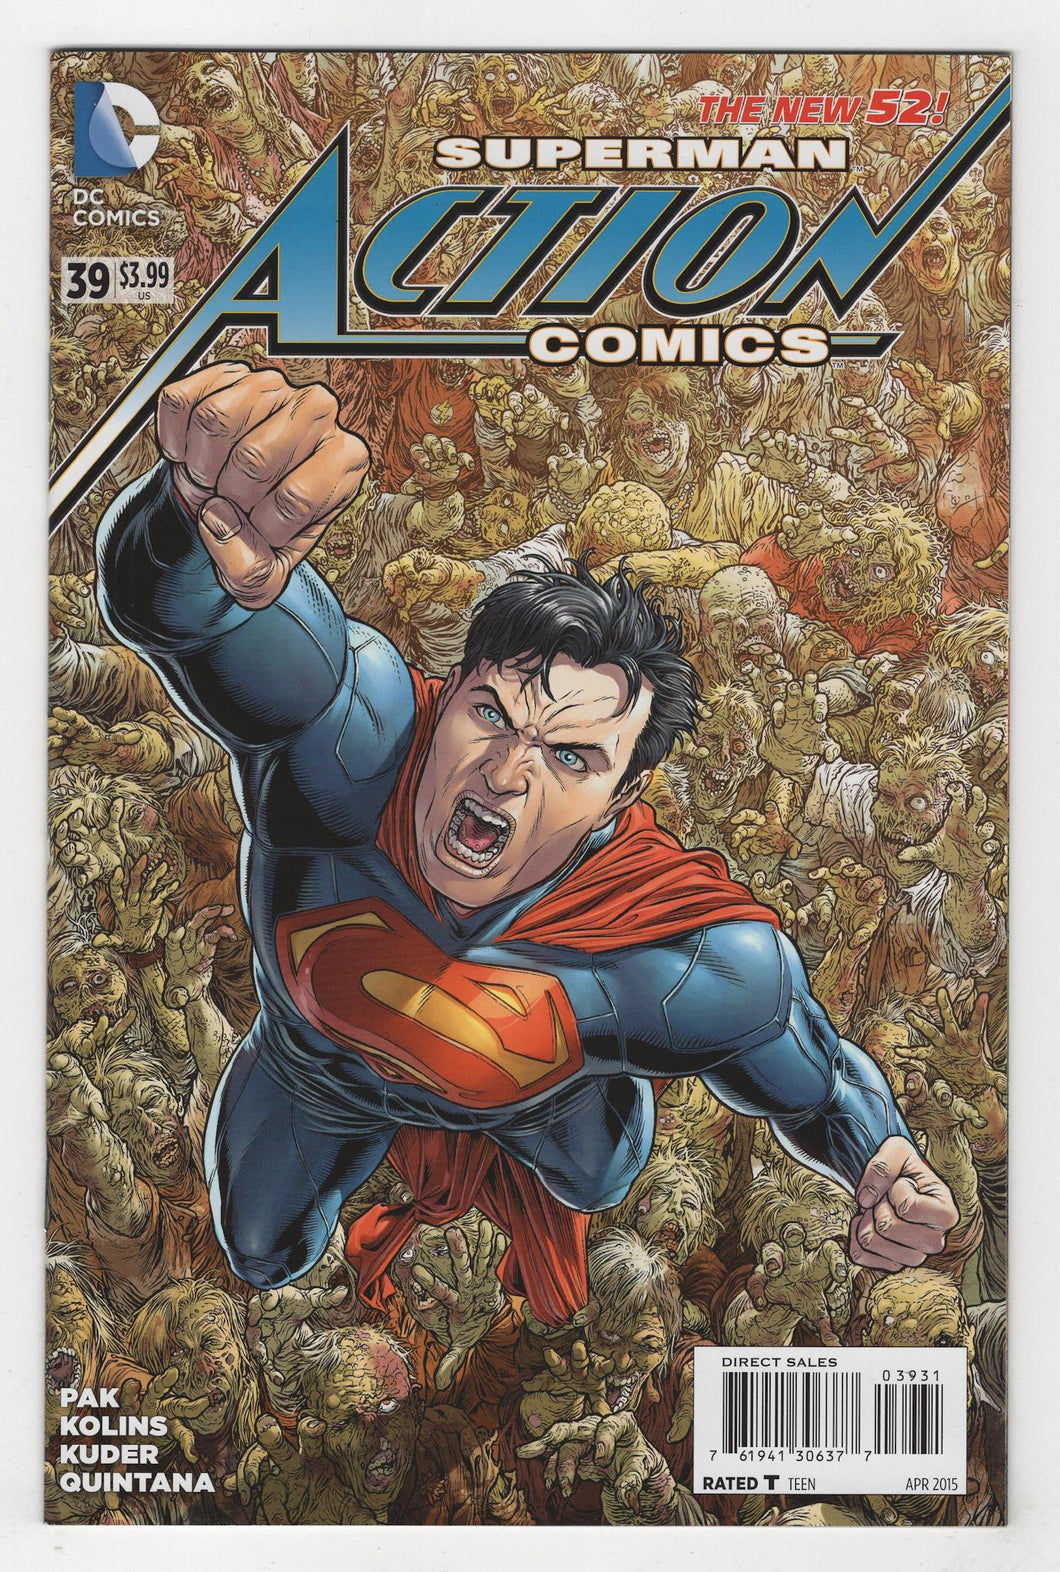 Action Comics #39 Variant Cover Front